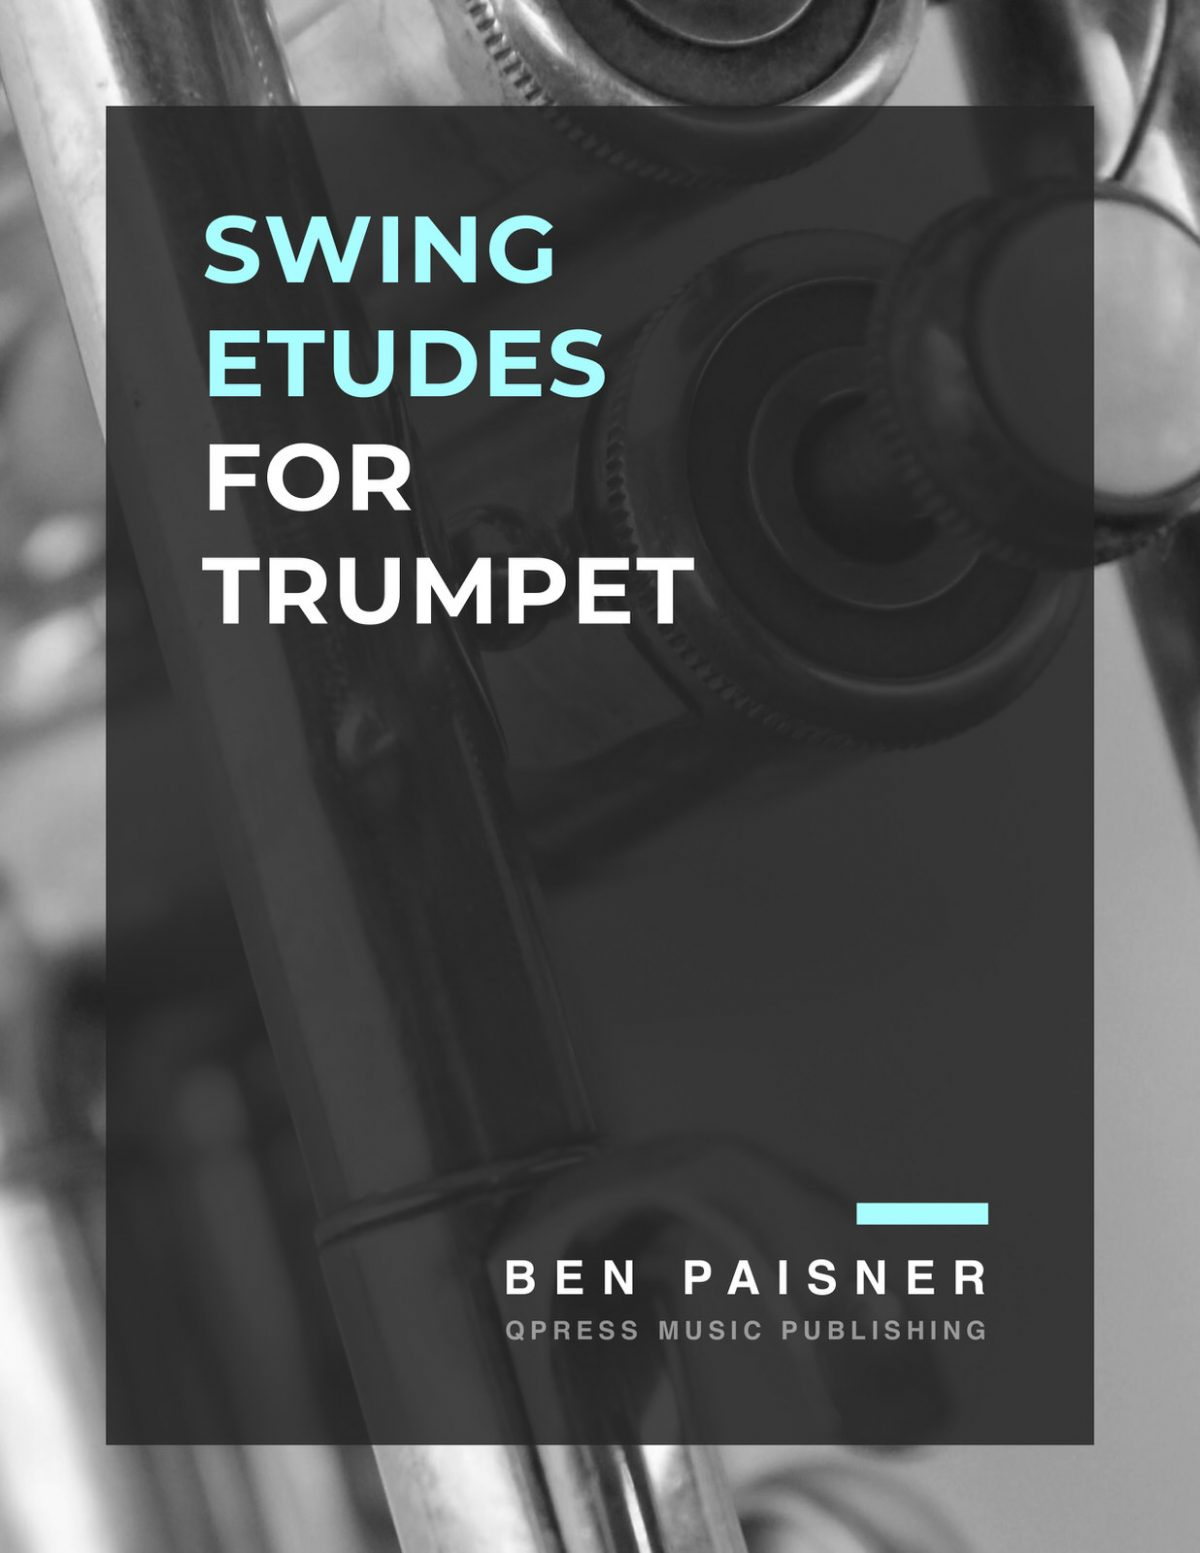 Paisner, Ben, Swing Etudes for Trumpet